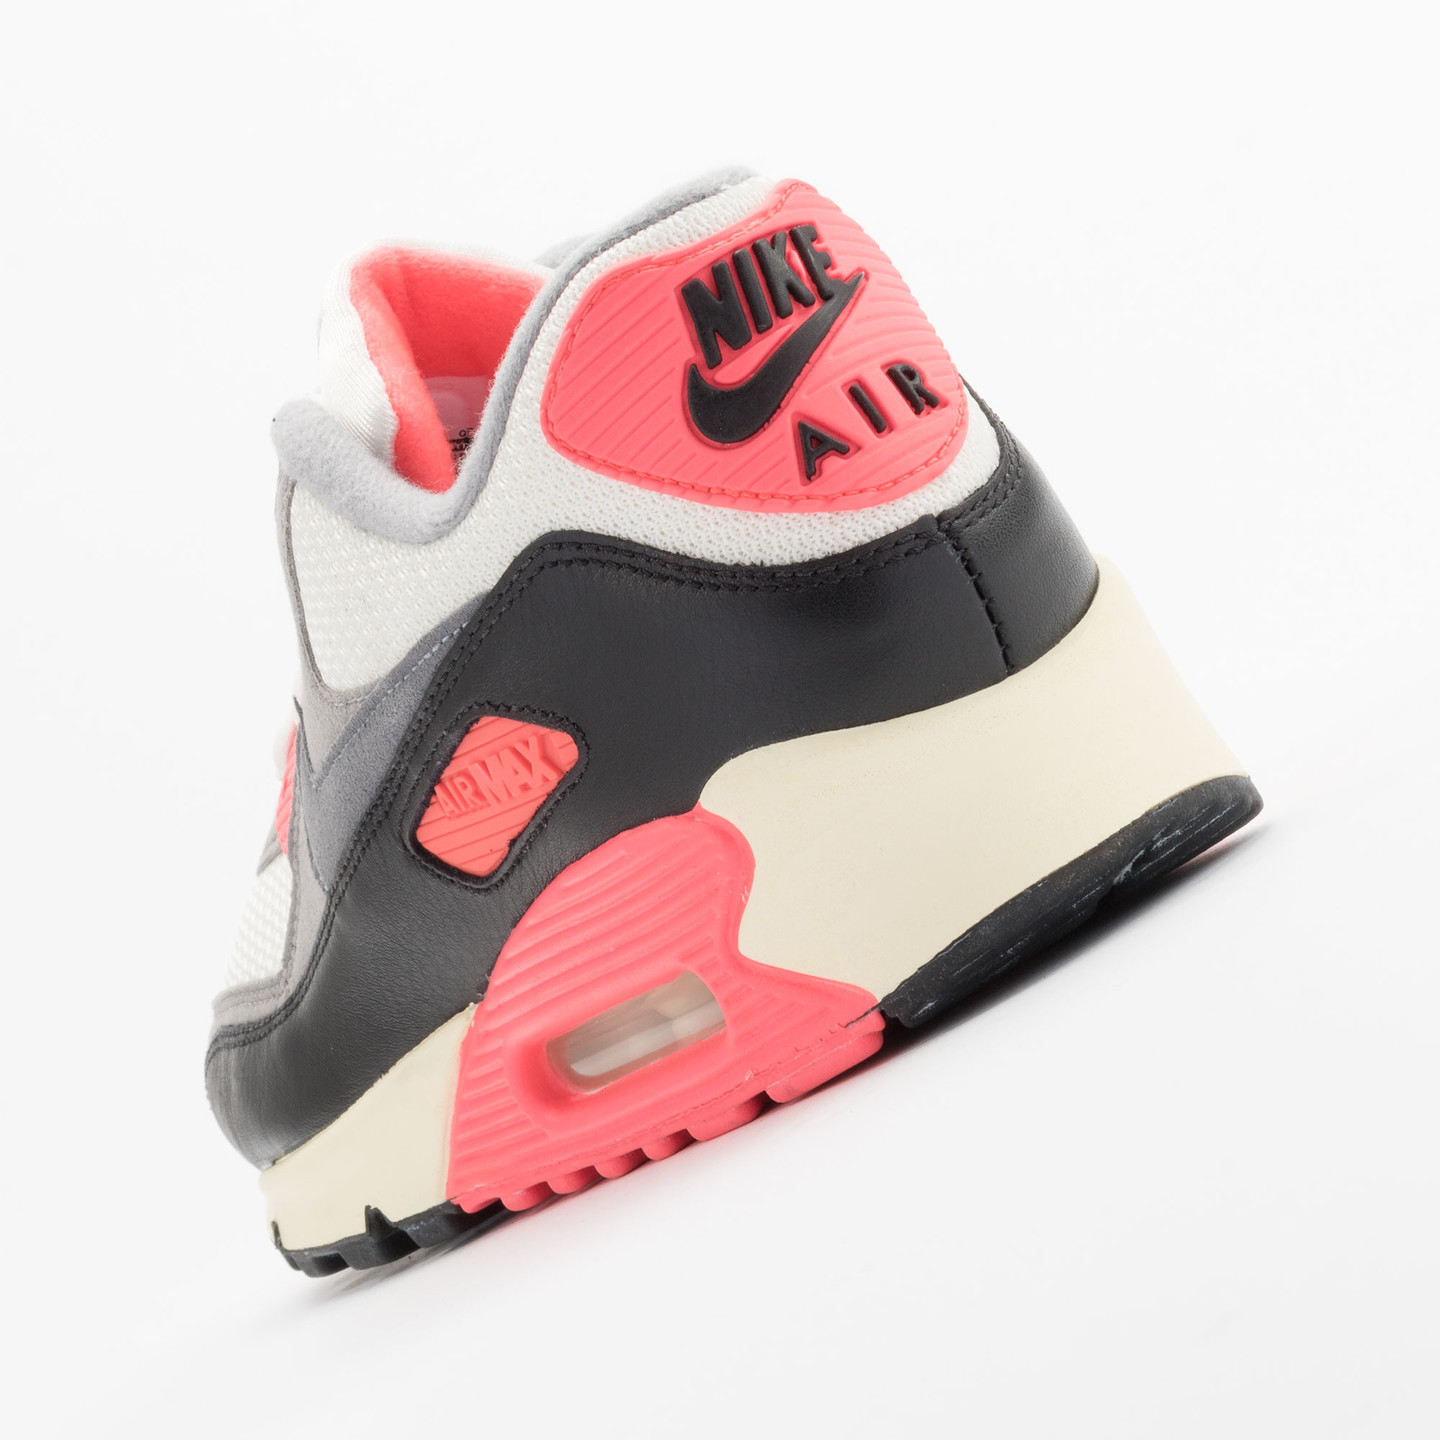 Nike Air Max 90 OG Vintage Infrared Sail/Cool Grey-Mdm Grey-Infrrd 543361-161-47